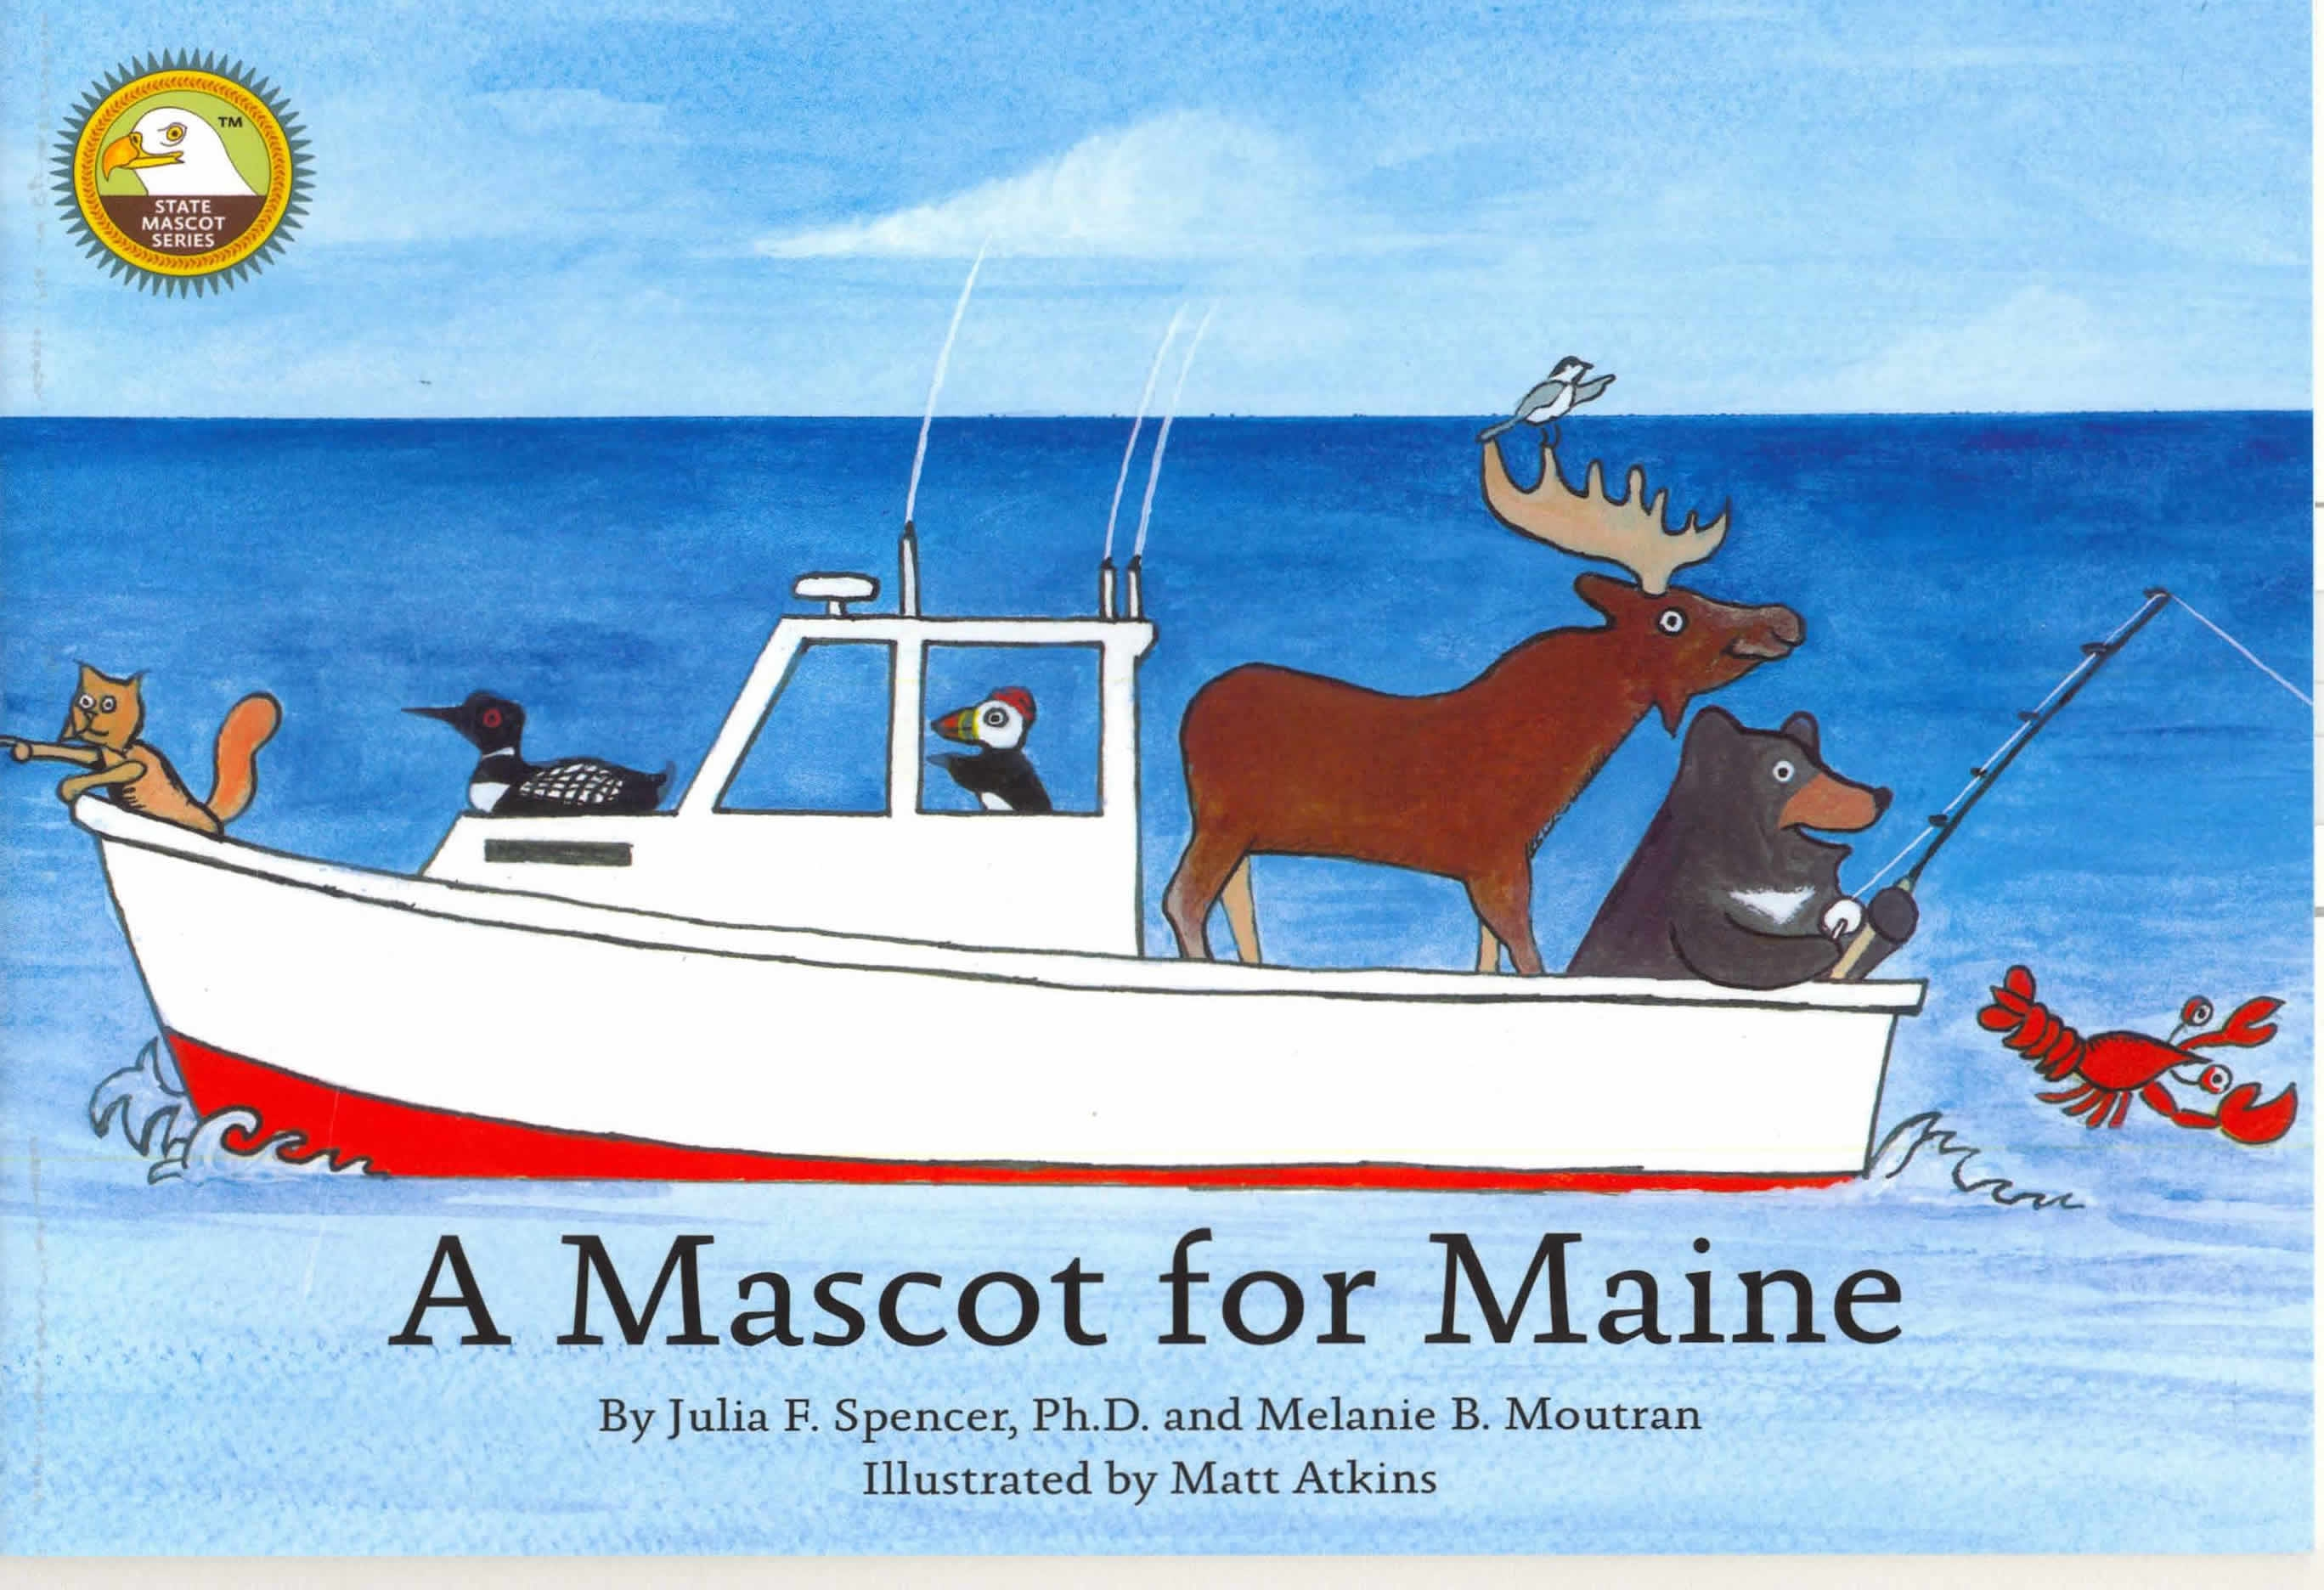 Image of the book cover A Mascot for Maine